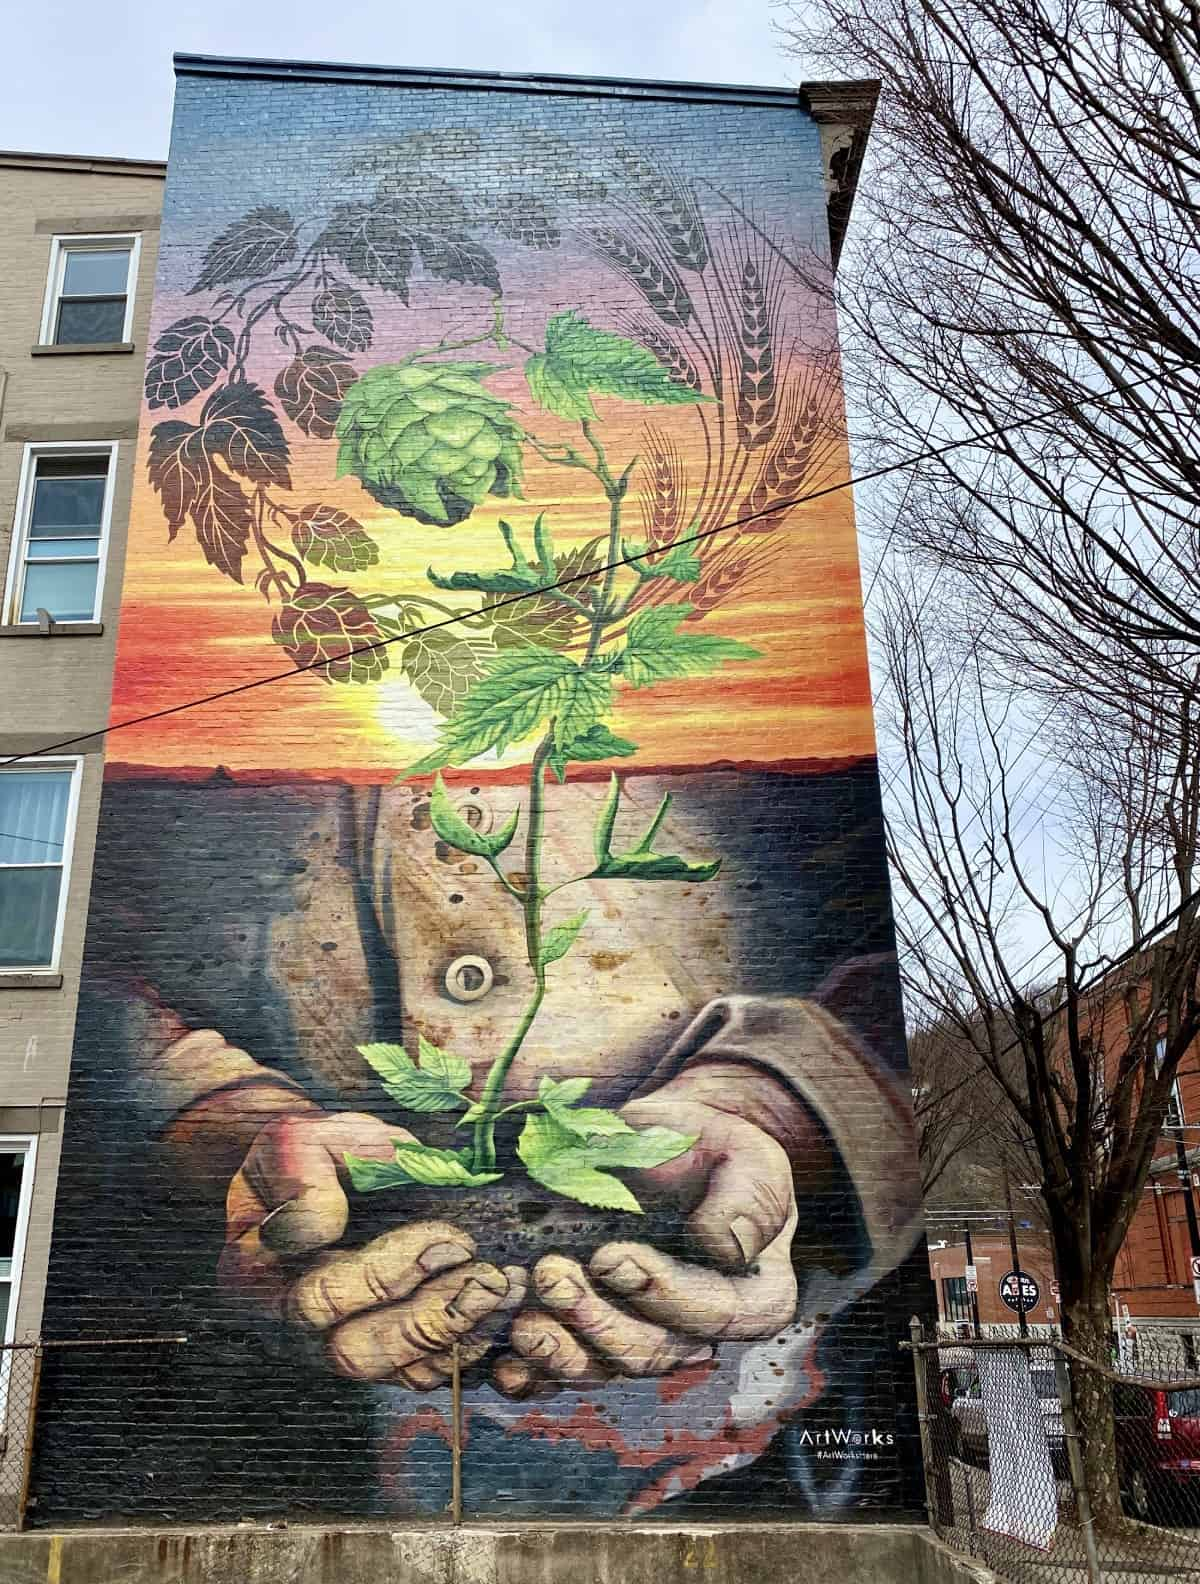 The Brewery District in OTR has some great examples of murals in Cincinnati